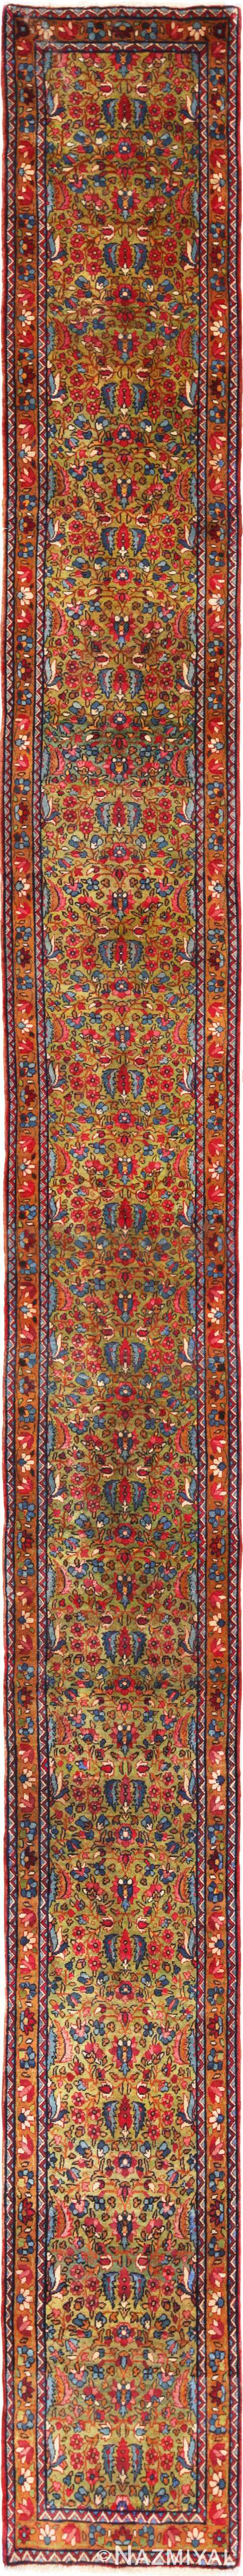 Full view Antique Kerman Persian rug 70165 by Nazmiyal